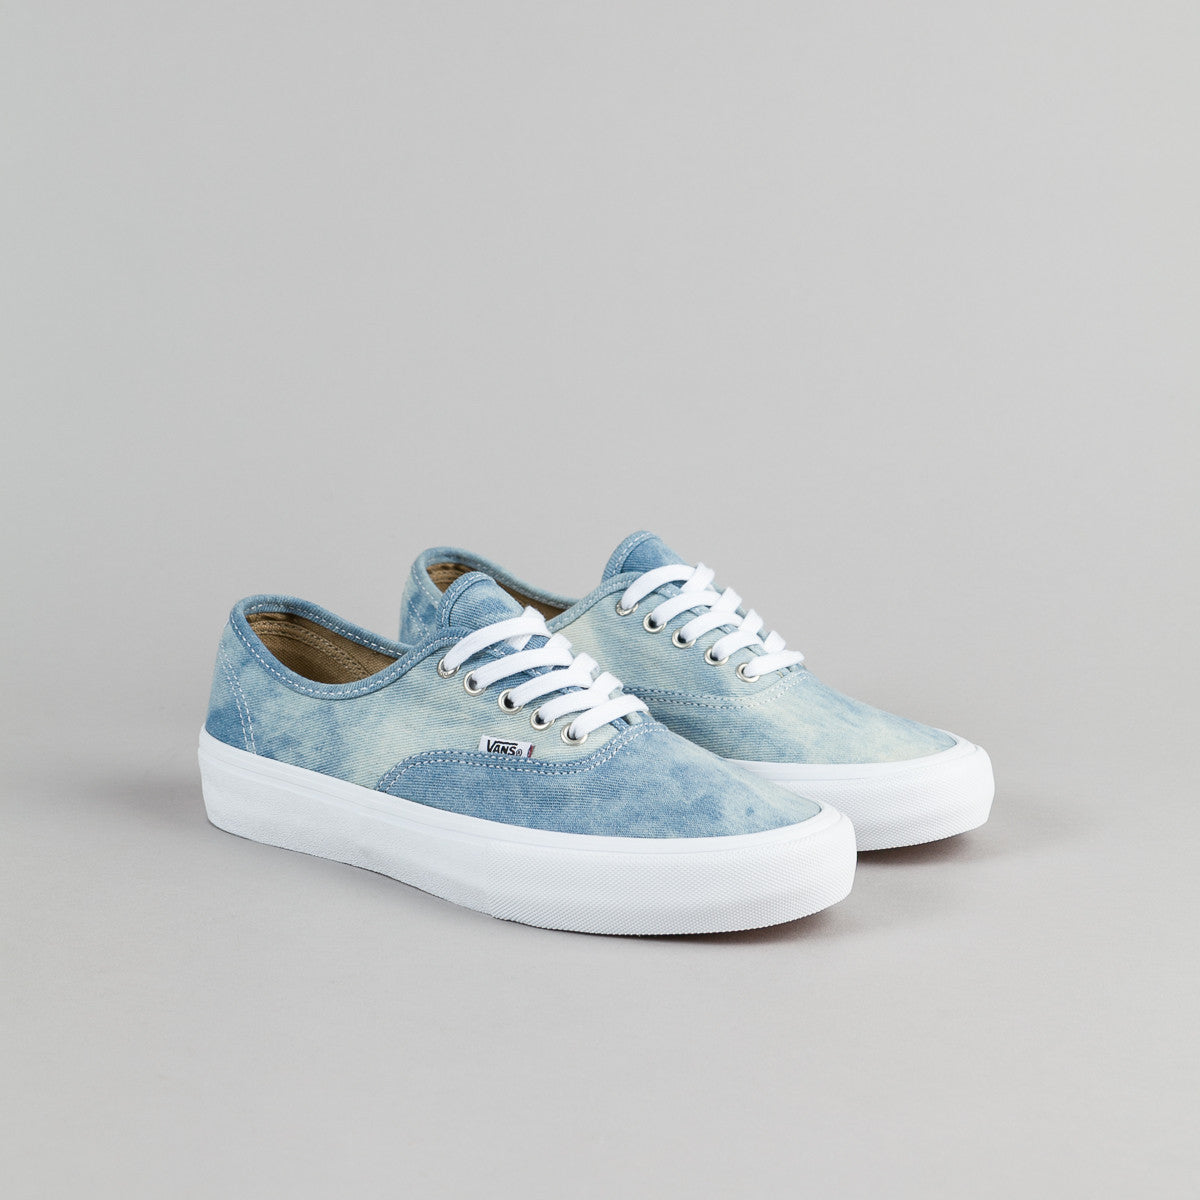 Vans Authentic Pro Shoes - Denim / White